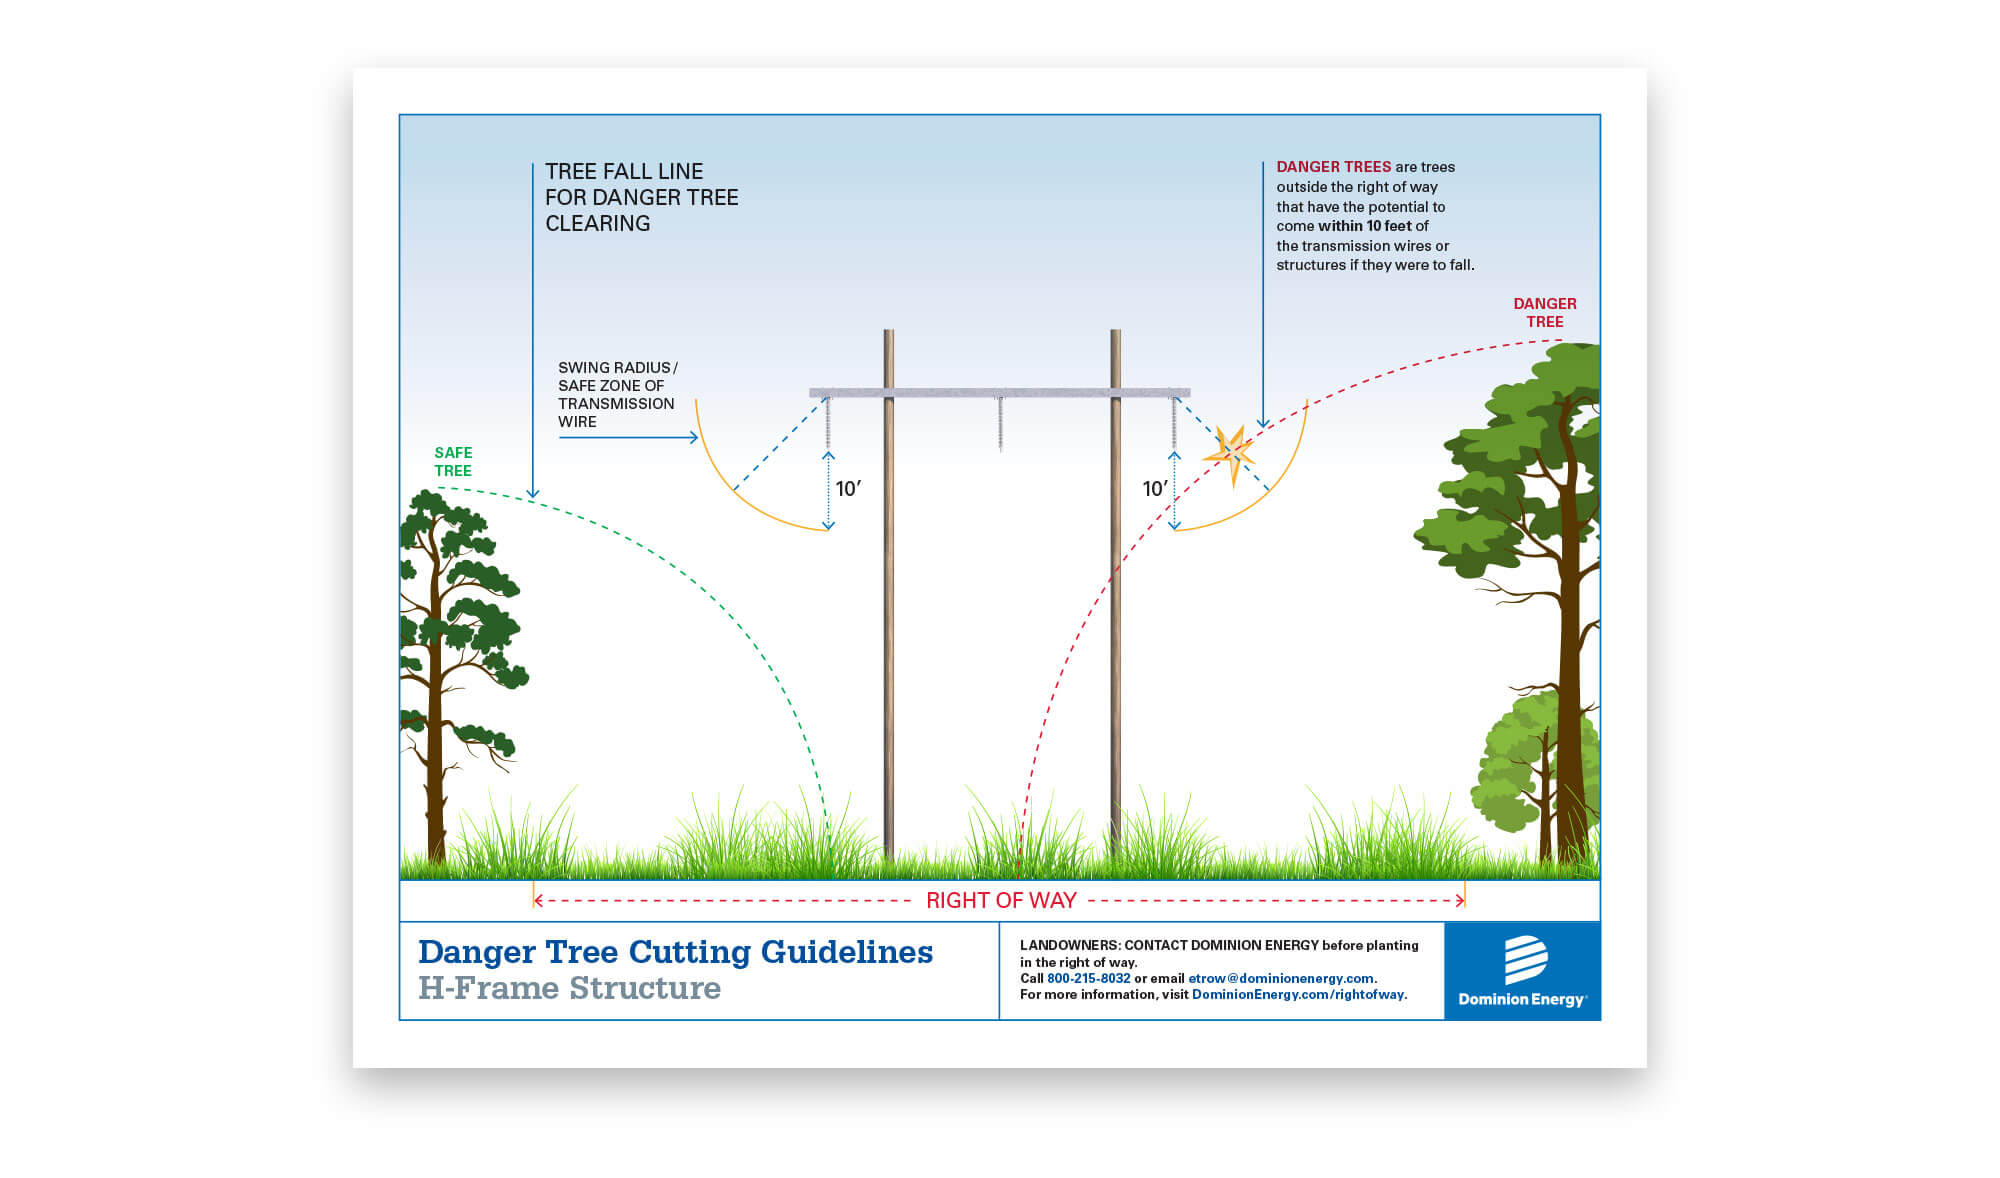 Danger Tree Cutting Guideline: H-Frame